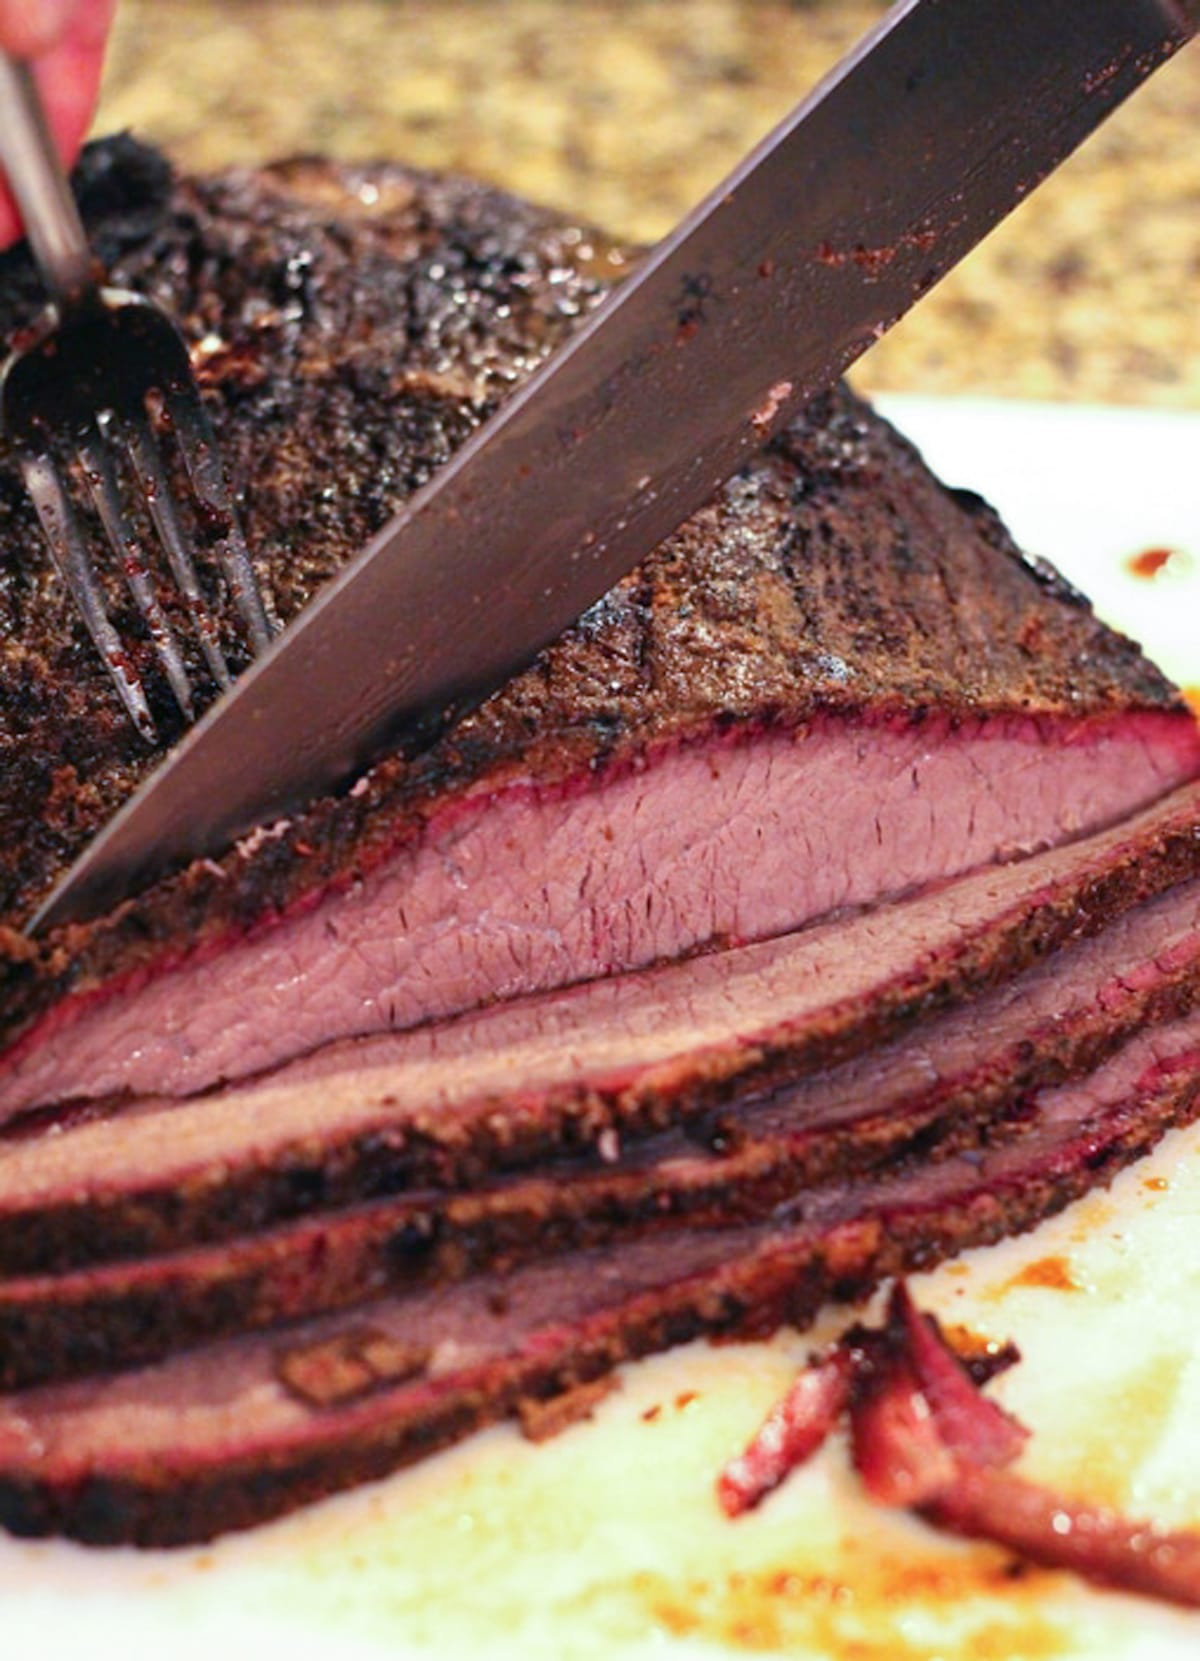 Person slicing a brisket with a knife against the grain.